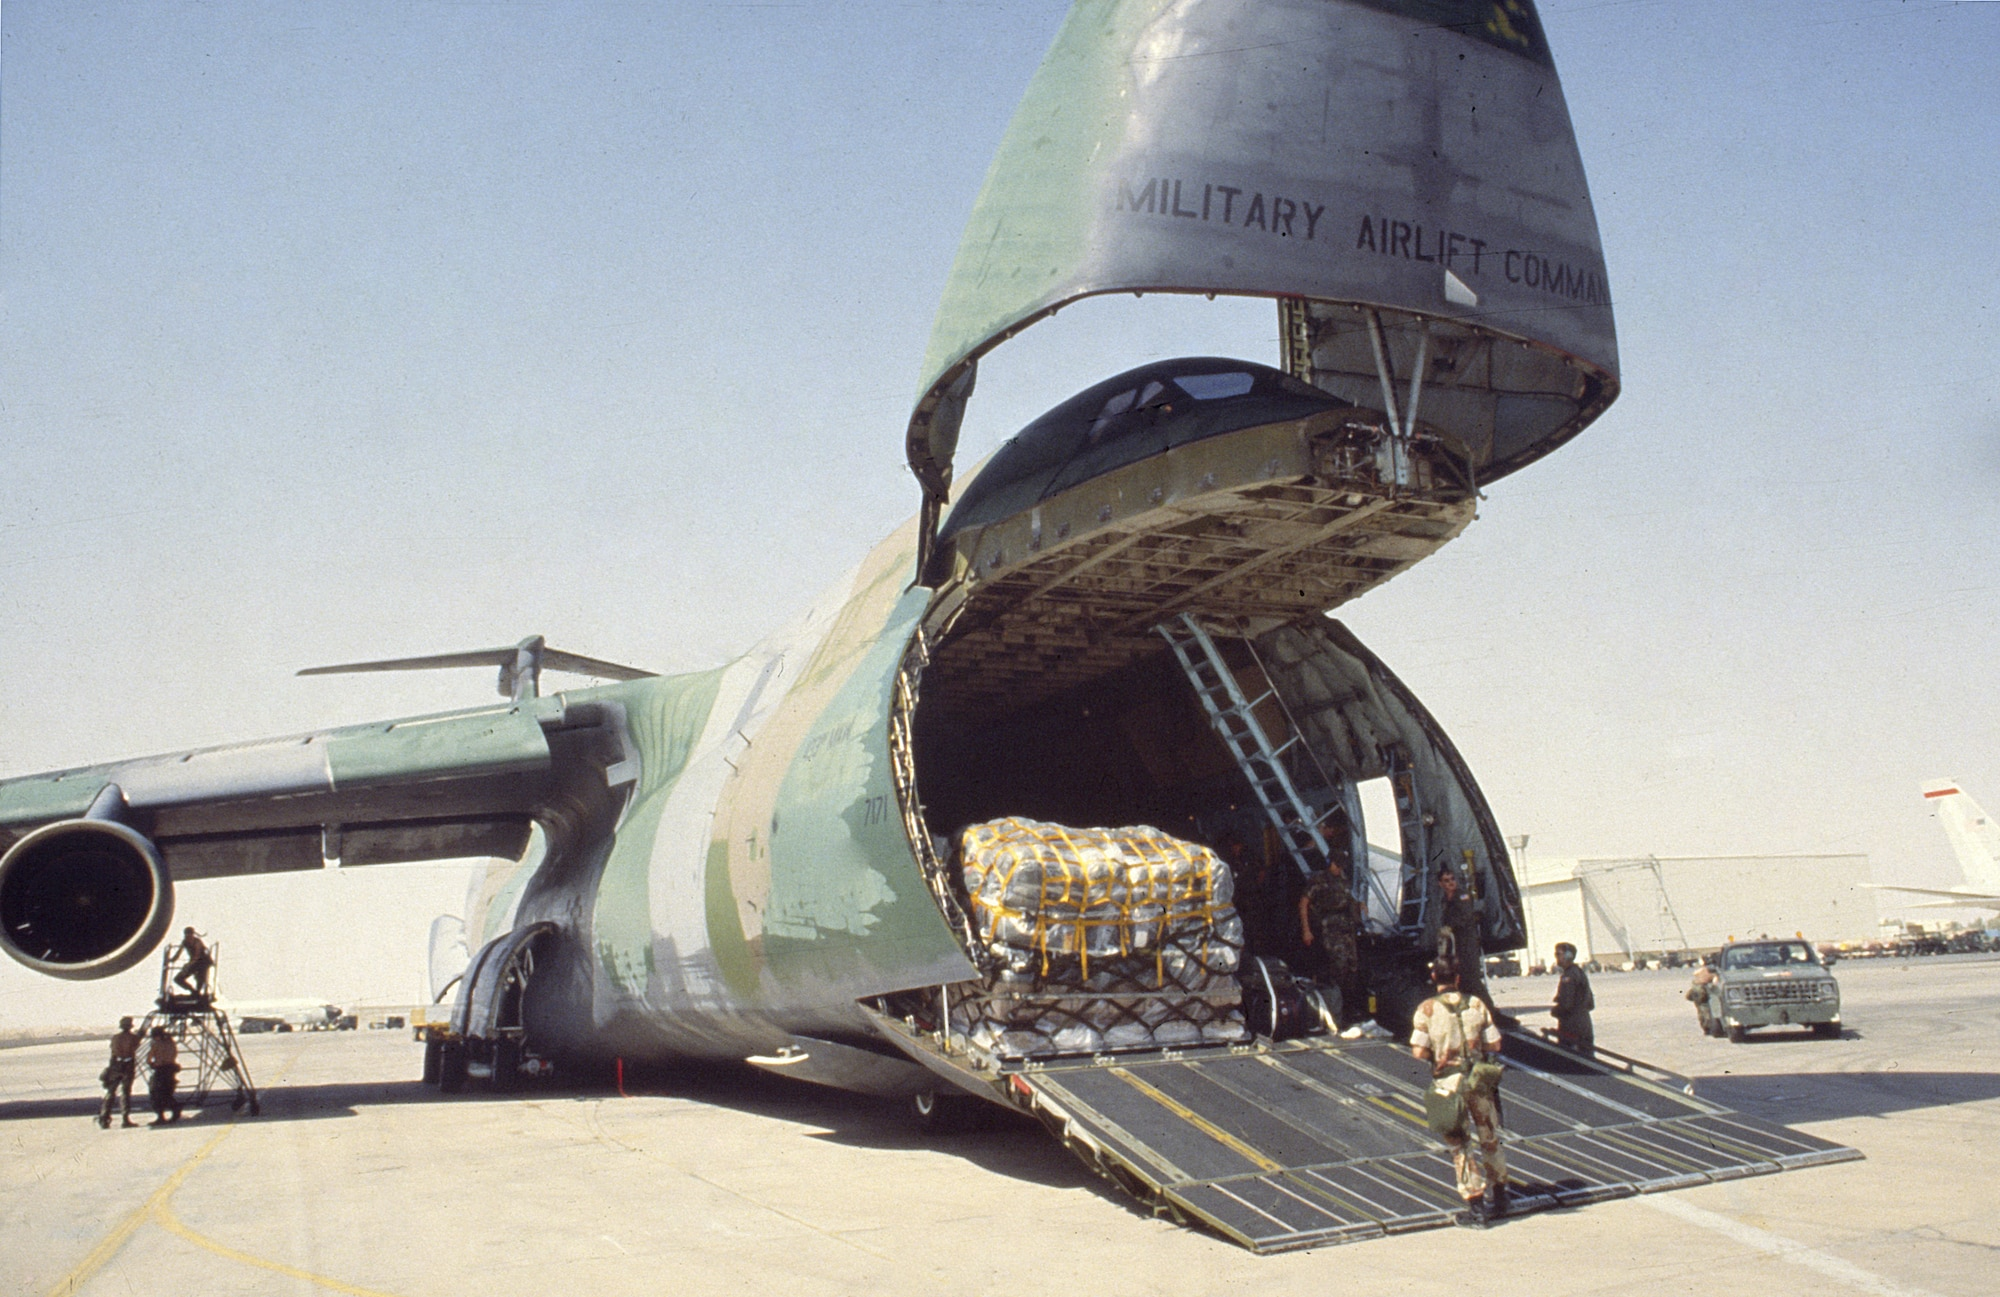 1990's -- A C-5 being loaded for an airlift to deliver cargo to troops in the desert during Desert Storm.